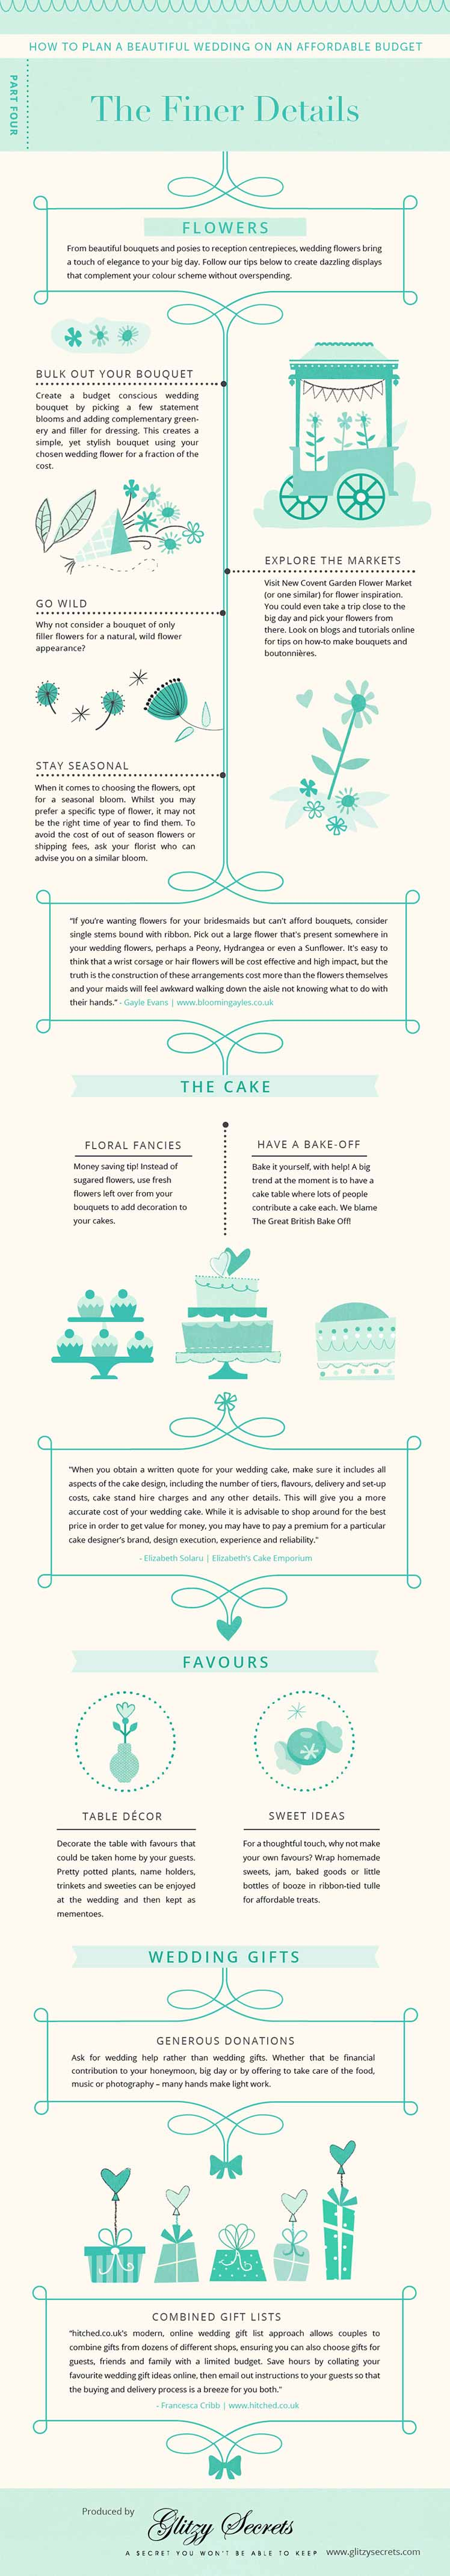 Wedding infographic for planning on a budget